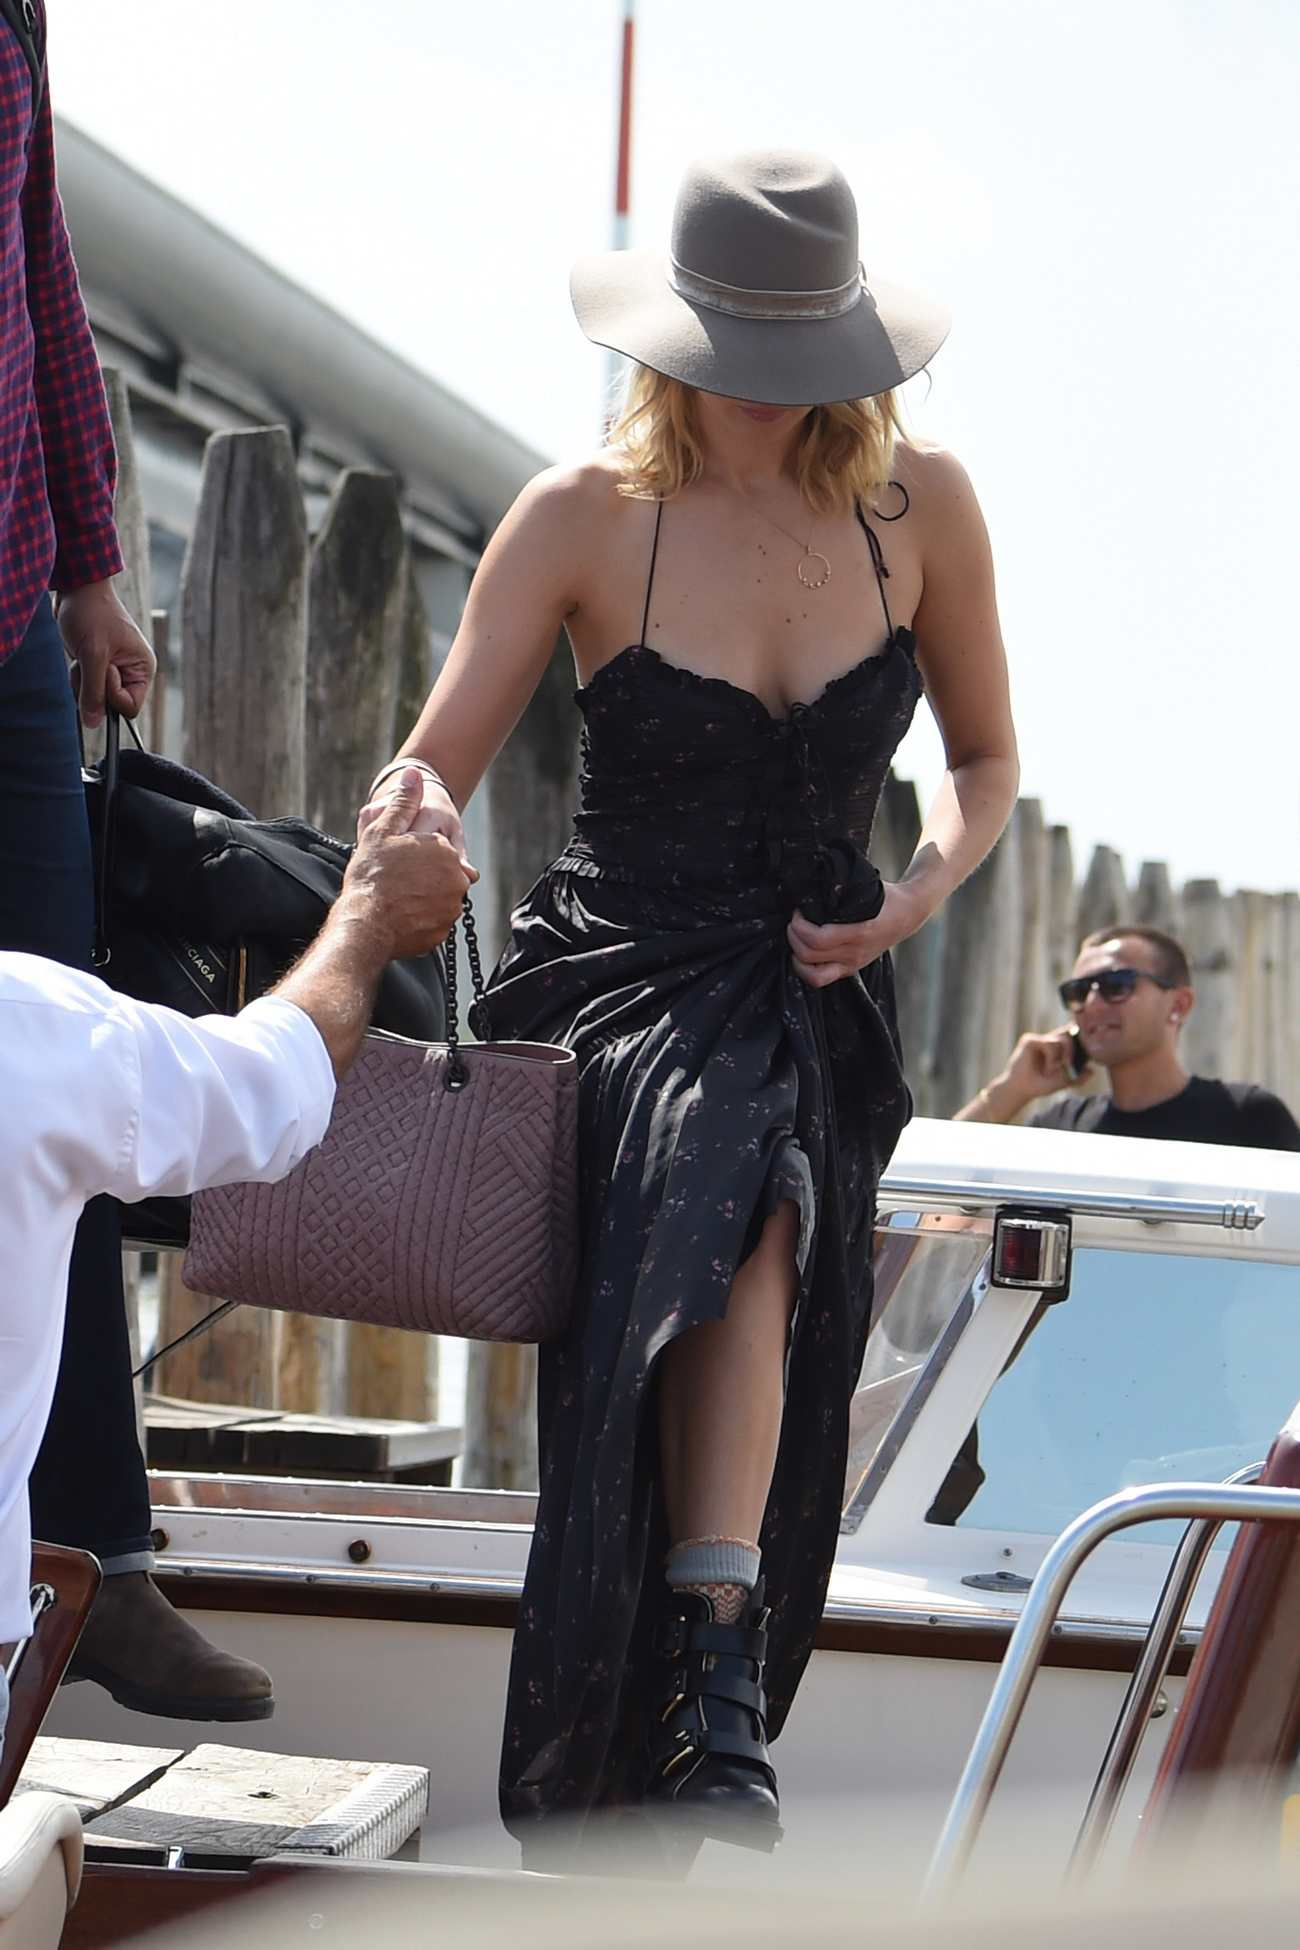 http://jenniferlawrencedaily.com/gallery/albums/userpics/10001/Arrives_at_Venice_Airport_for_the_74th_Venice_Festival_in_Italy_-_September_2-18.jpg